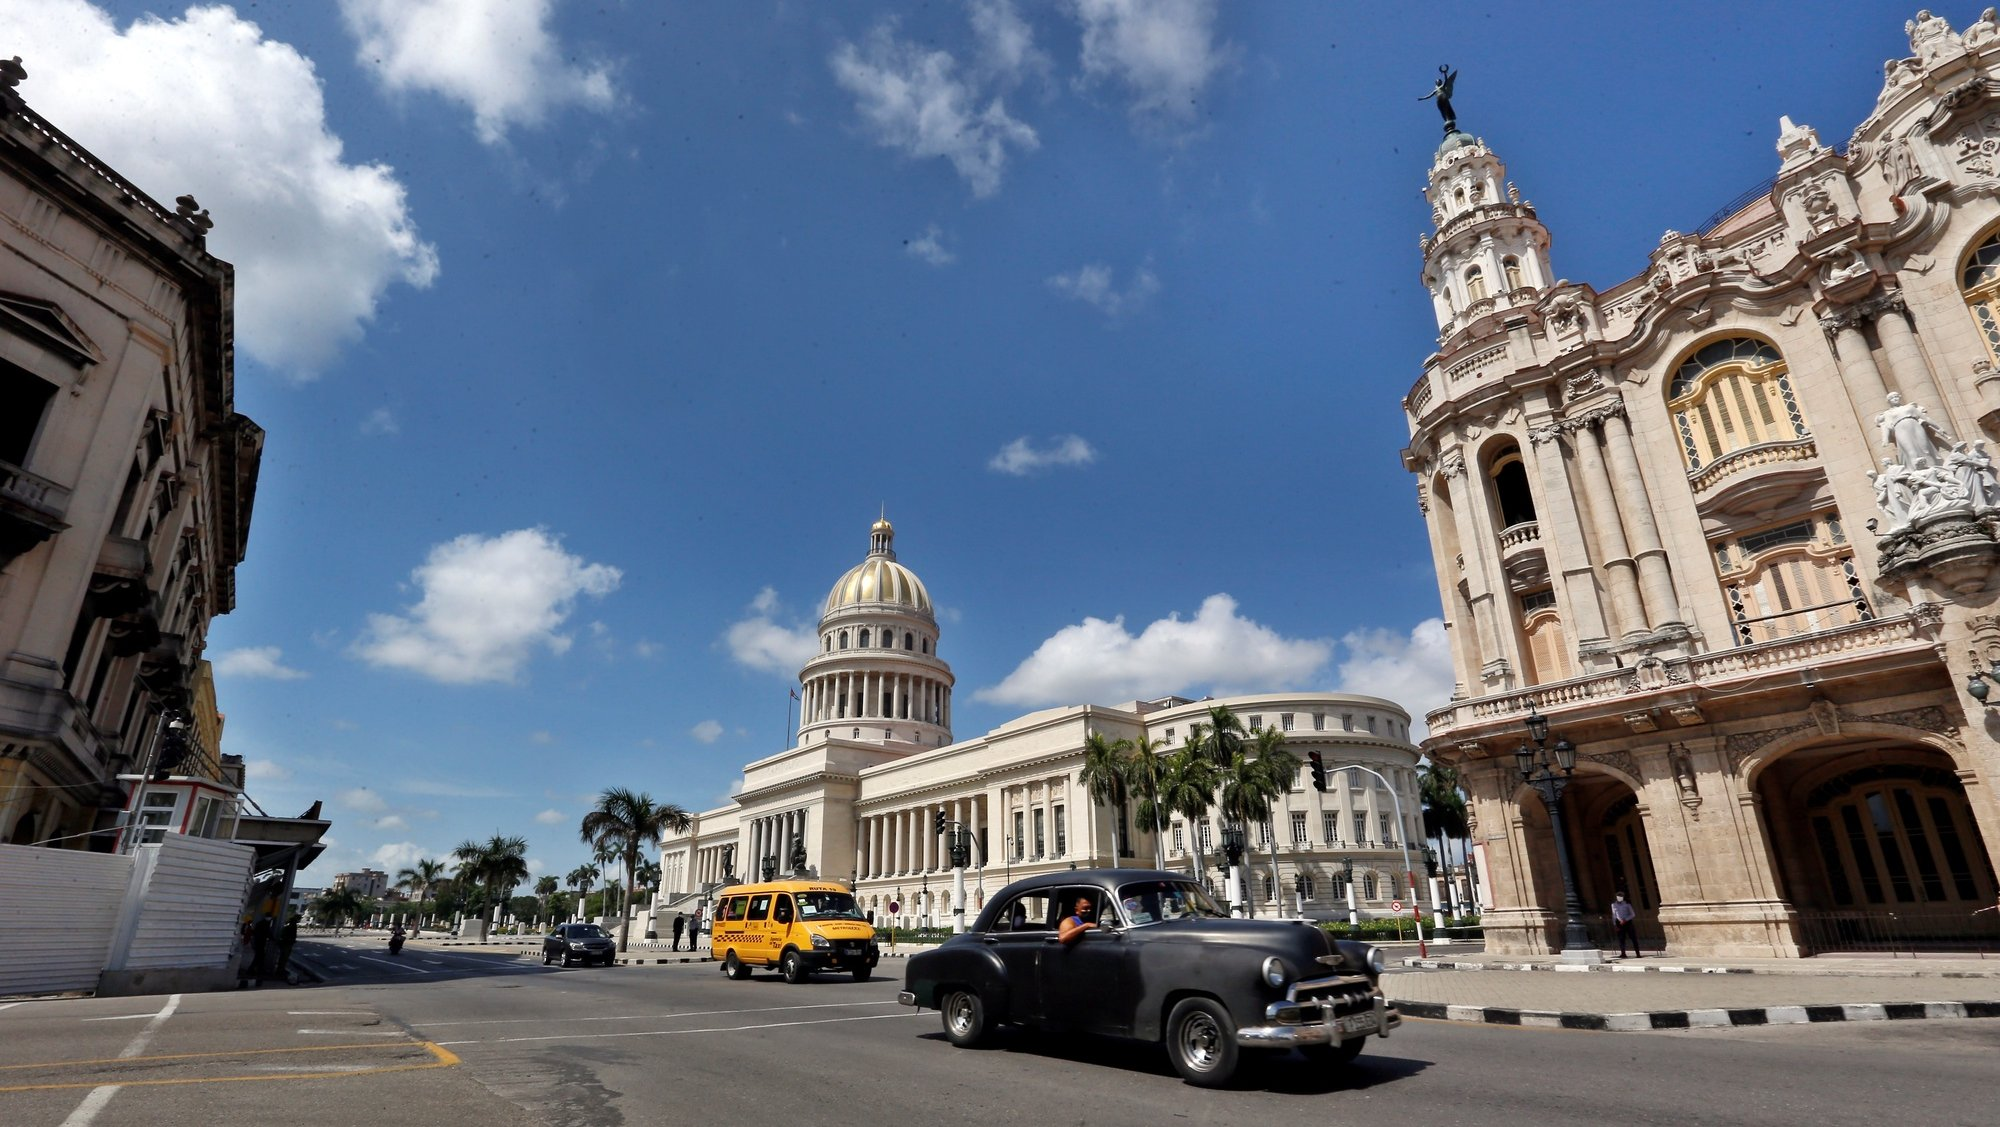 epa09340956 Several cars pass in front of the Capitol in Havana, Cuba, 12 July 2021. The streets of the Cuban capital remain calm one day after the large demonstrations against the government.  EPA/Ernesto Mastrascusa